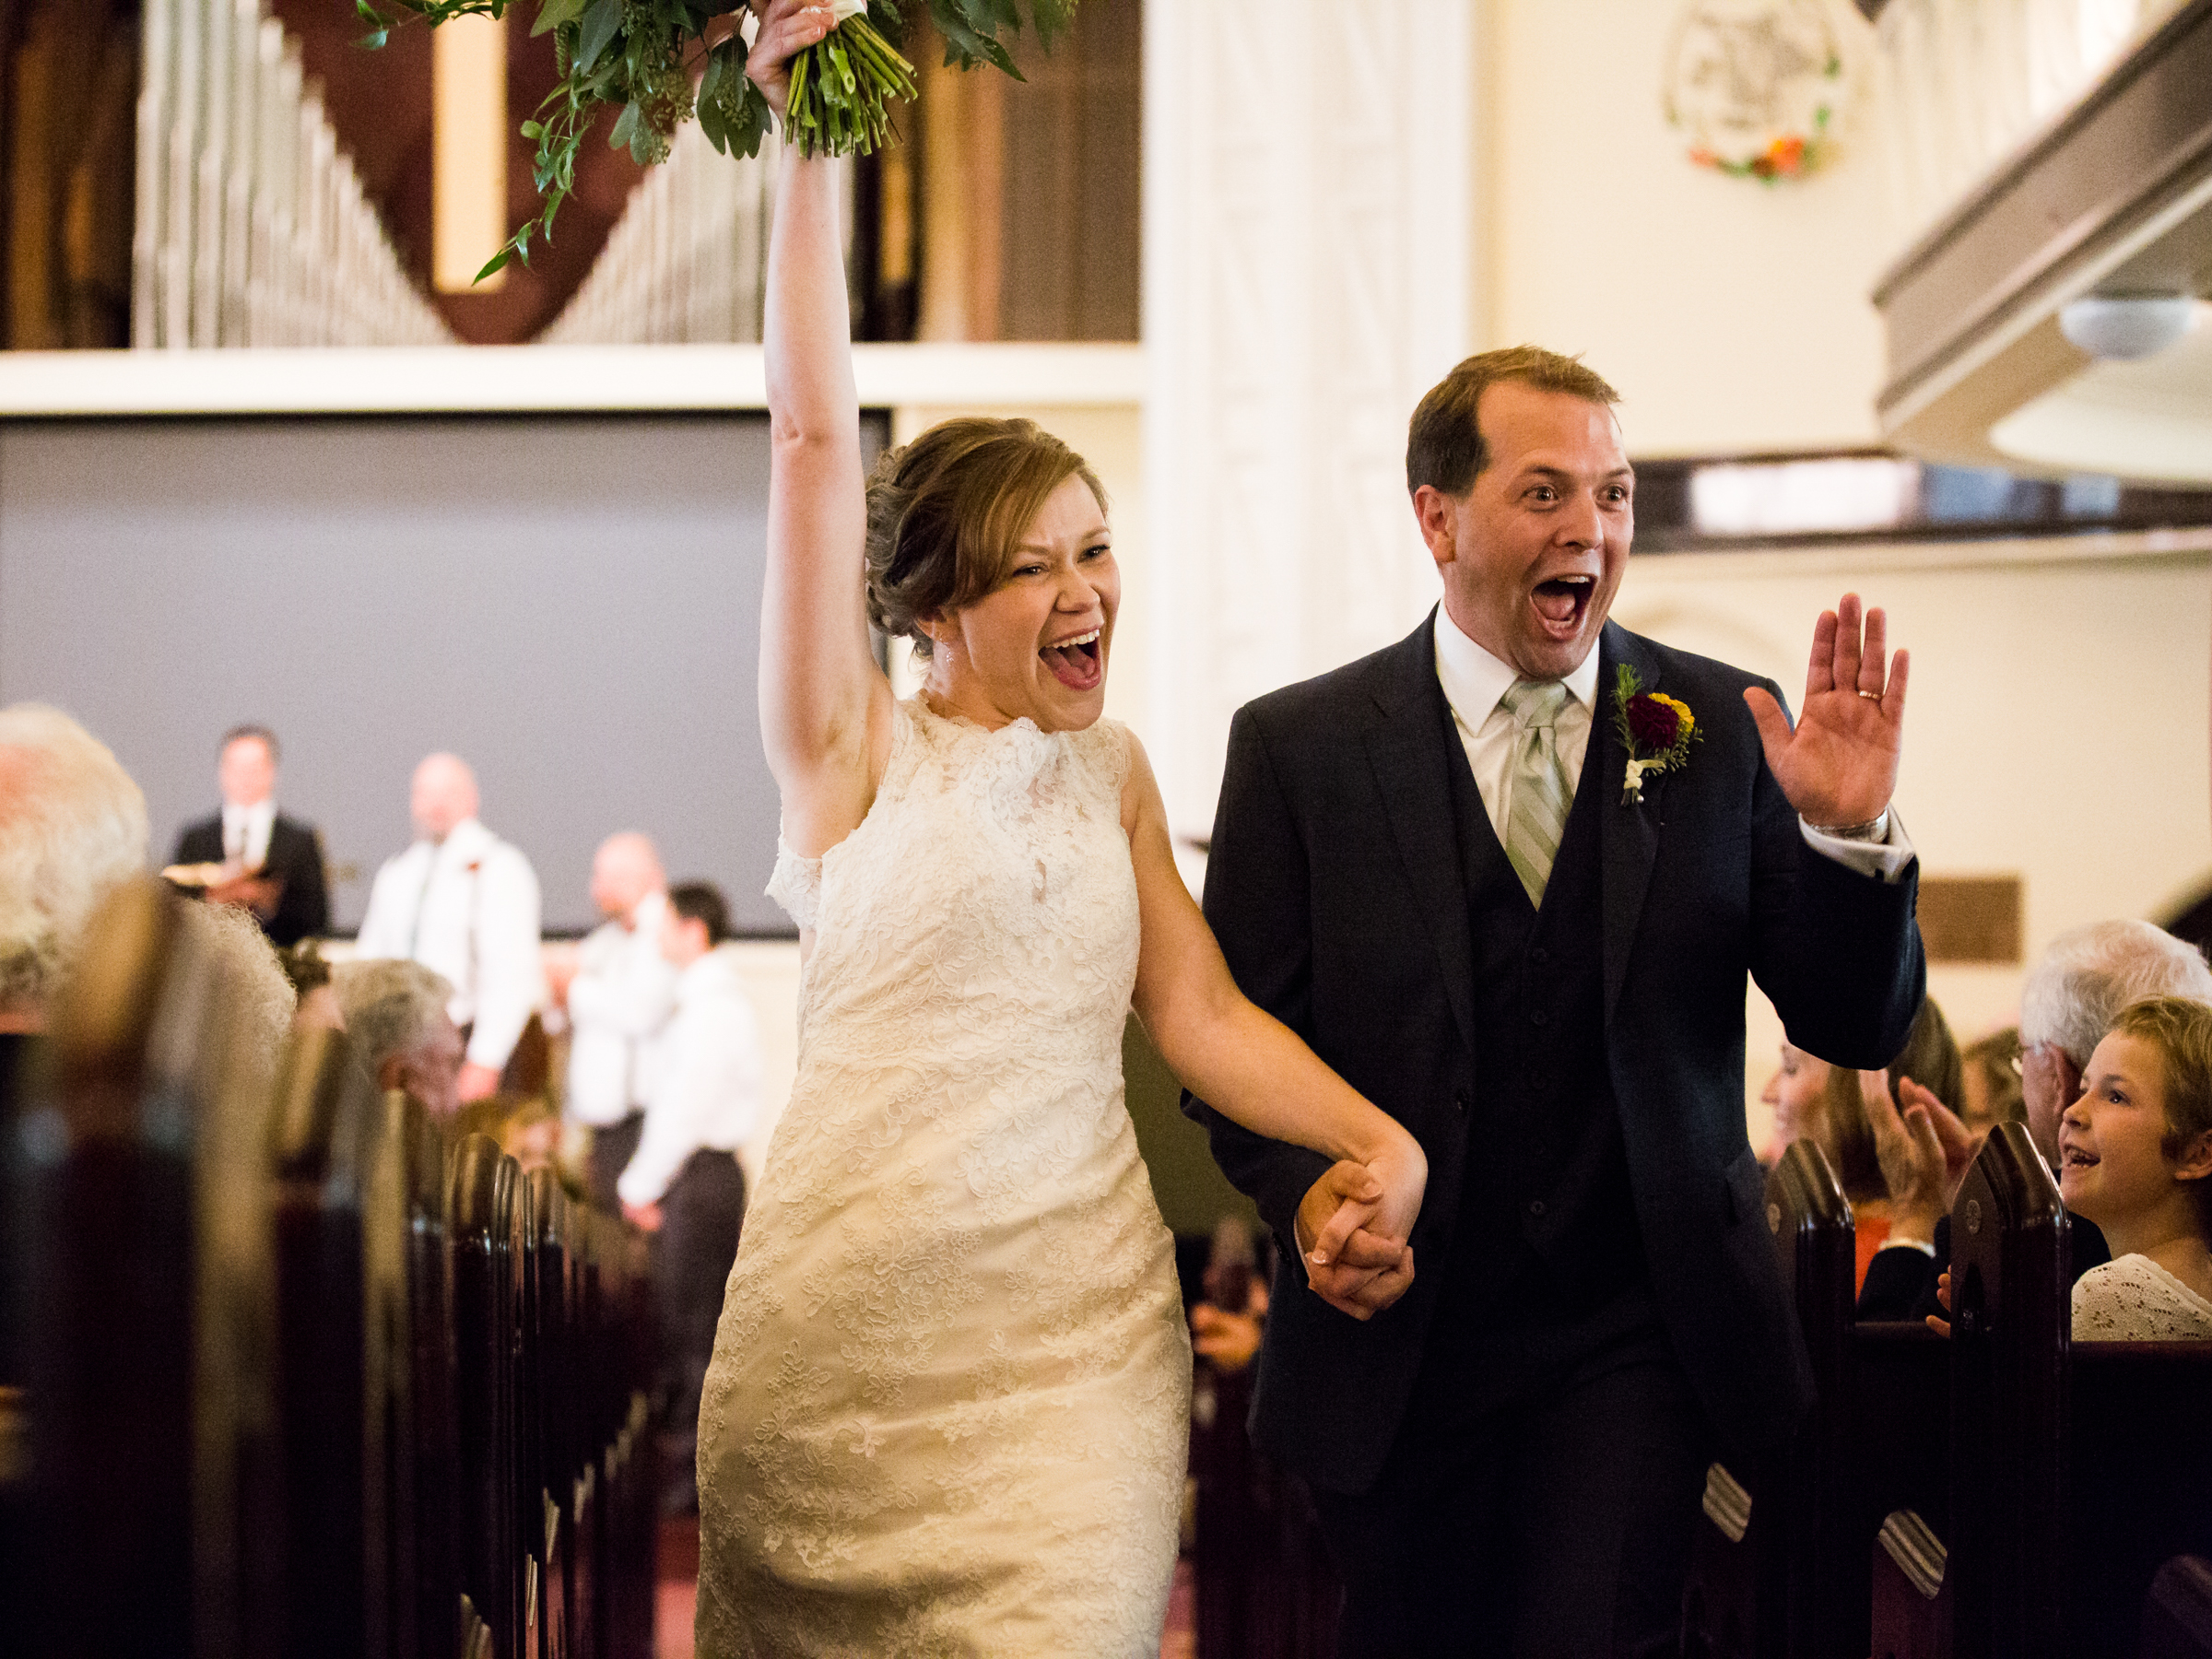 Bellingham Washington wedding, celebrating in the aisle First Presbyterian